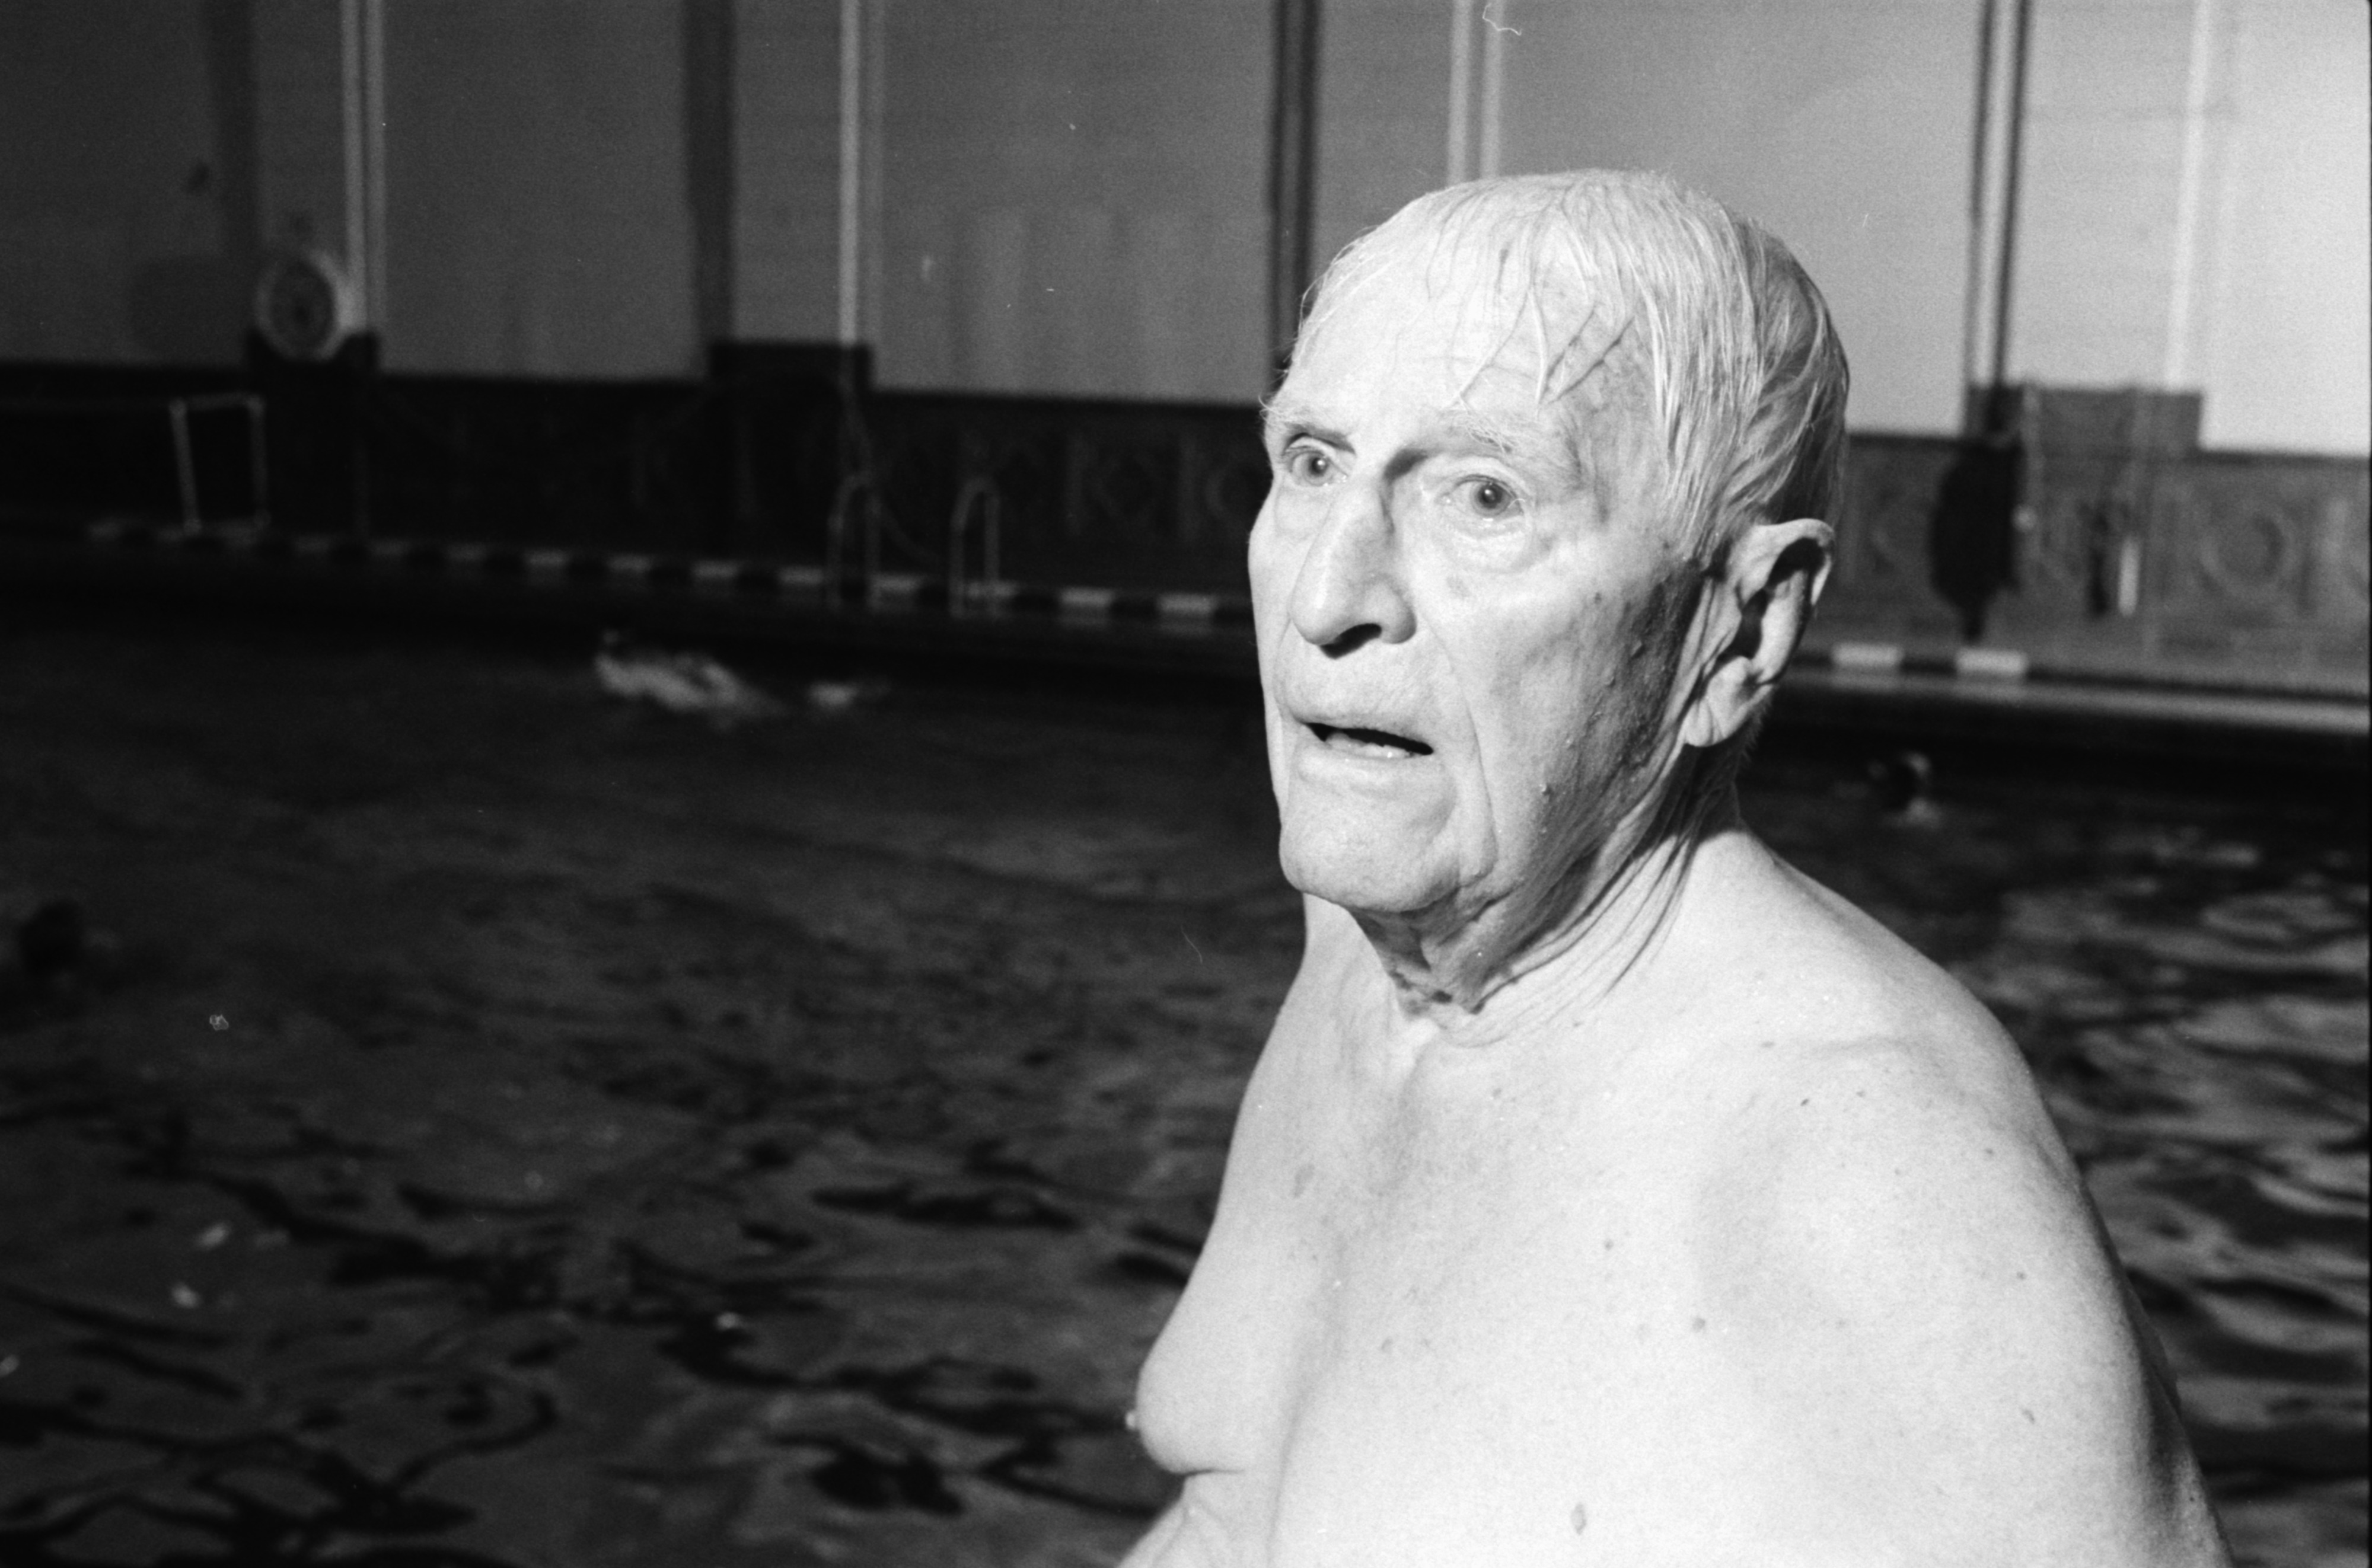 Eugene B. Power at a Swim Group in the Intramural Building, July 1990 image